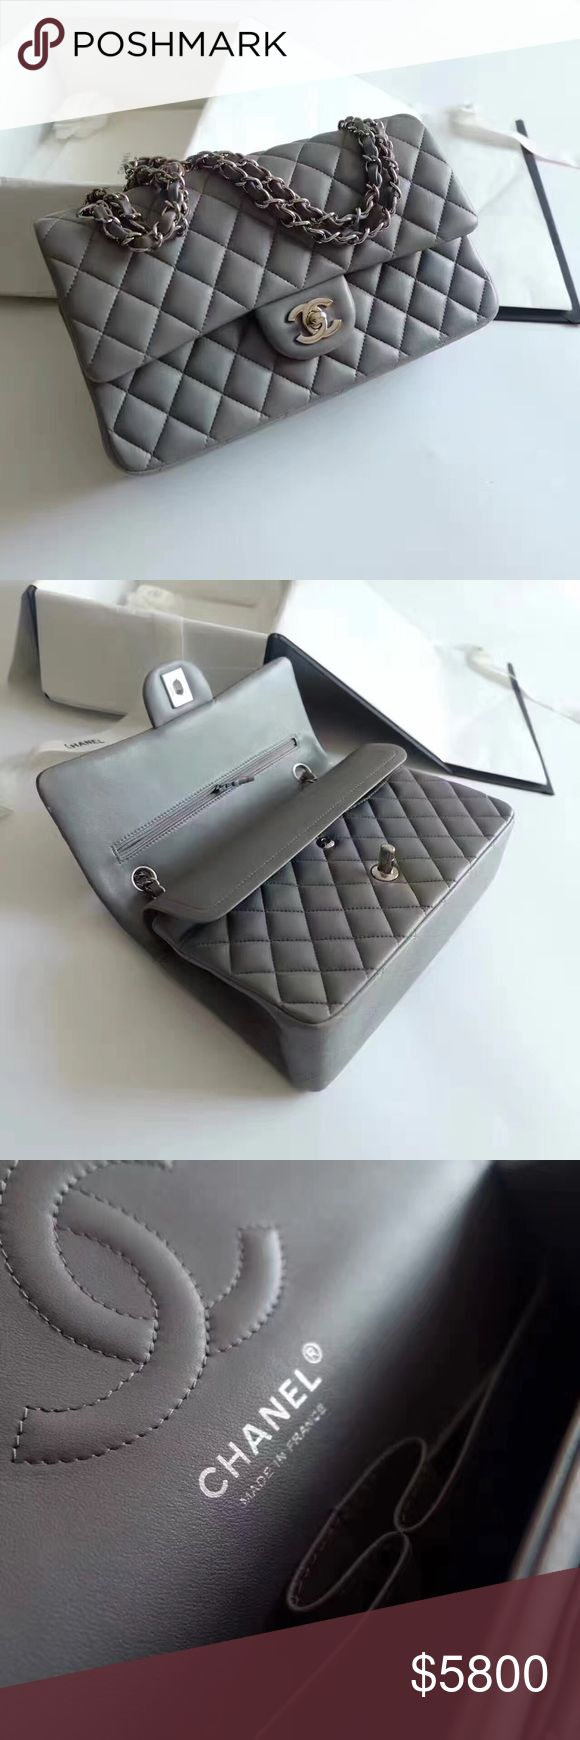 Chanel Classic Double Flap (Grey) Authentic Chanel Double Flap in Medium Size. Color: Grey with silver hardware. Excellent Condition. Comes with original packaging includes dustbag and box. ️️ with 20% Discount. Comment below if you are interested. CHANEL Bags Shoulder Bags